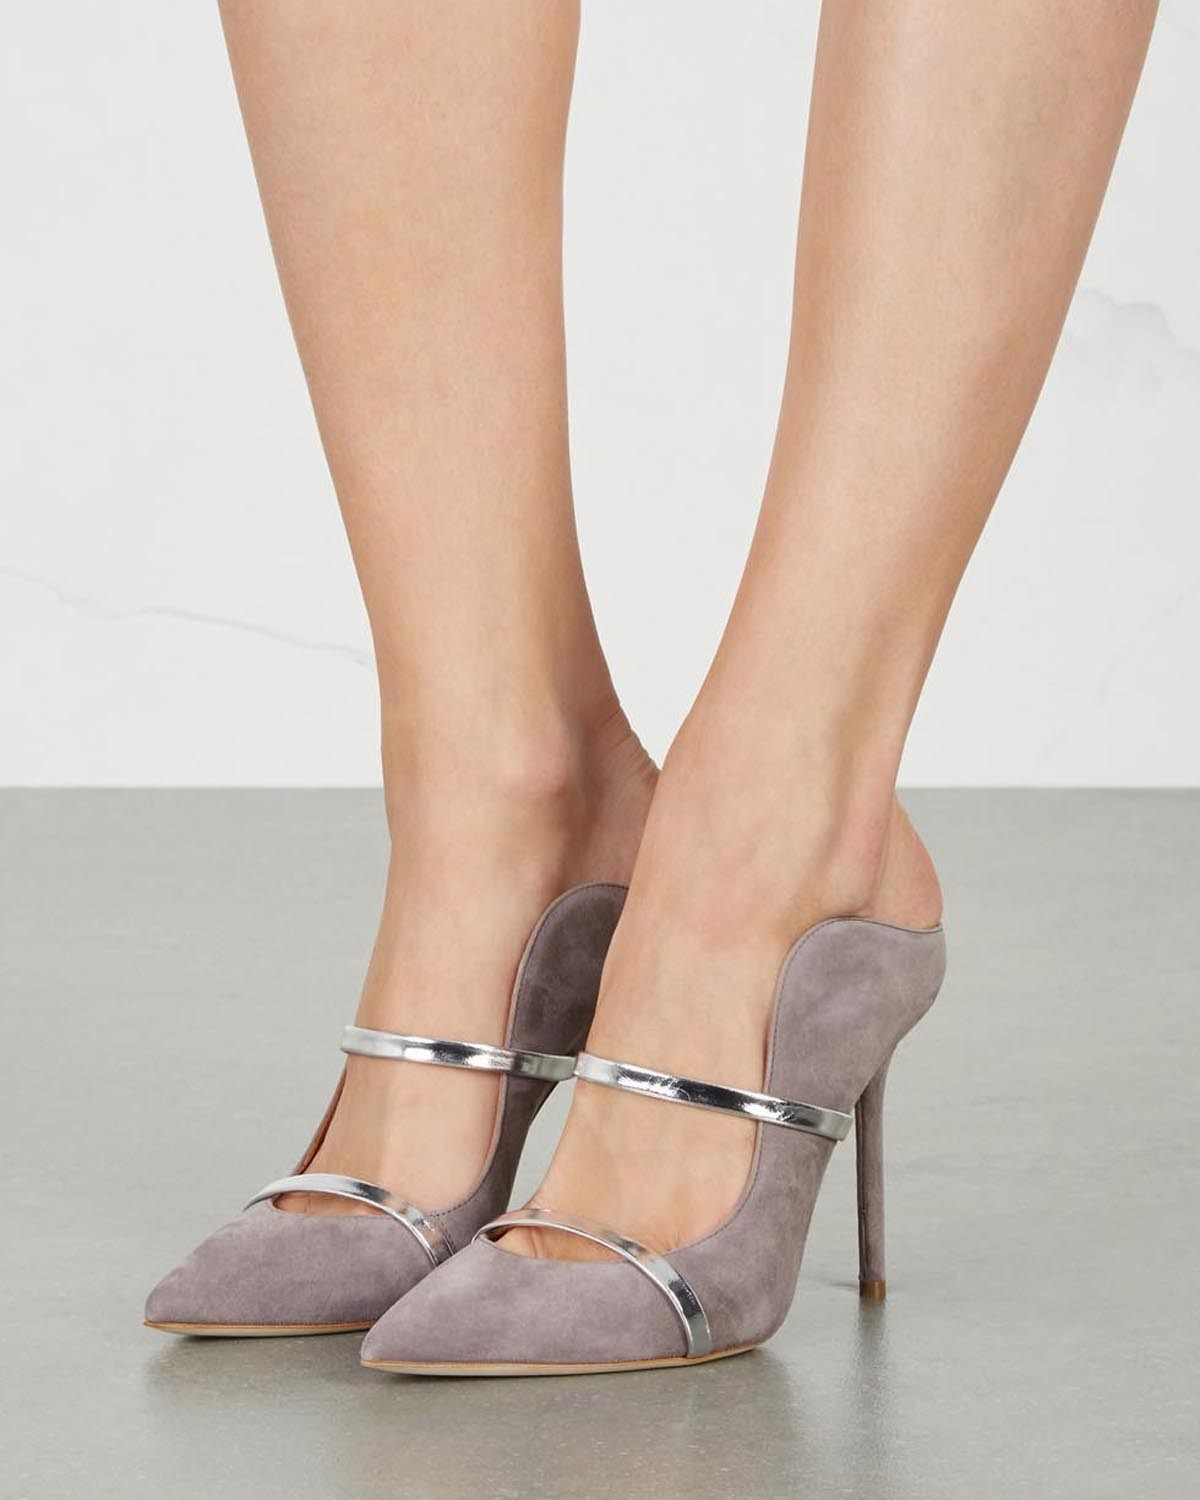 MALONE SOULIERS Maureen grey suede mules - Shoes Post Almond